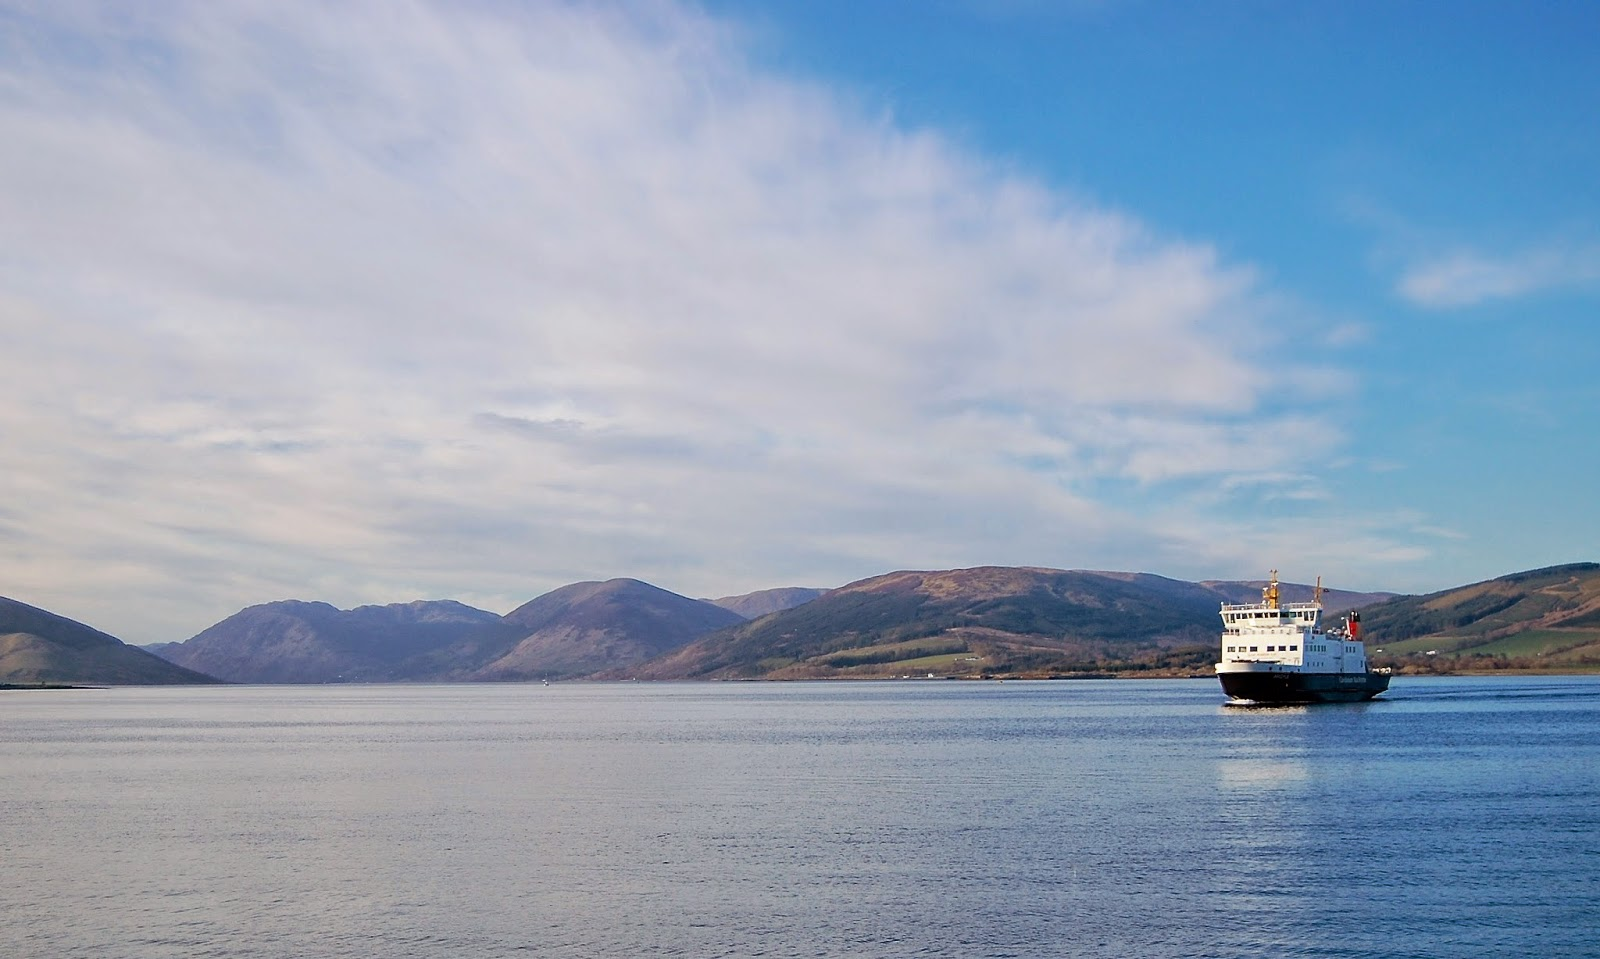 Ferry boat in the Firth of Clyde